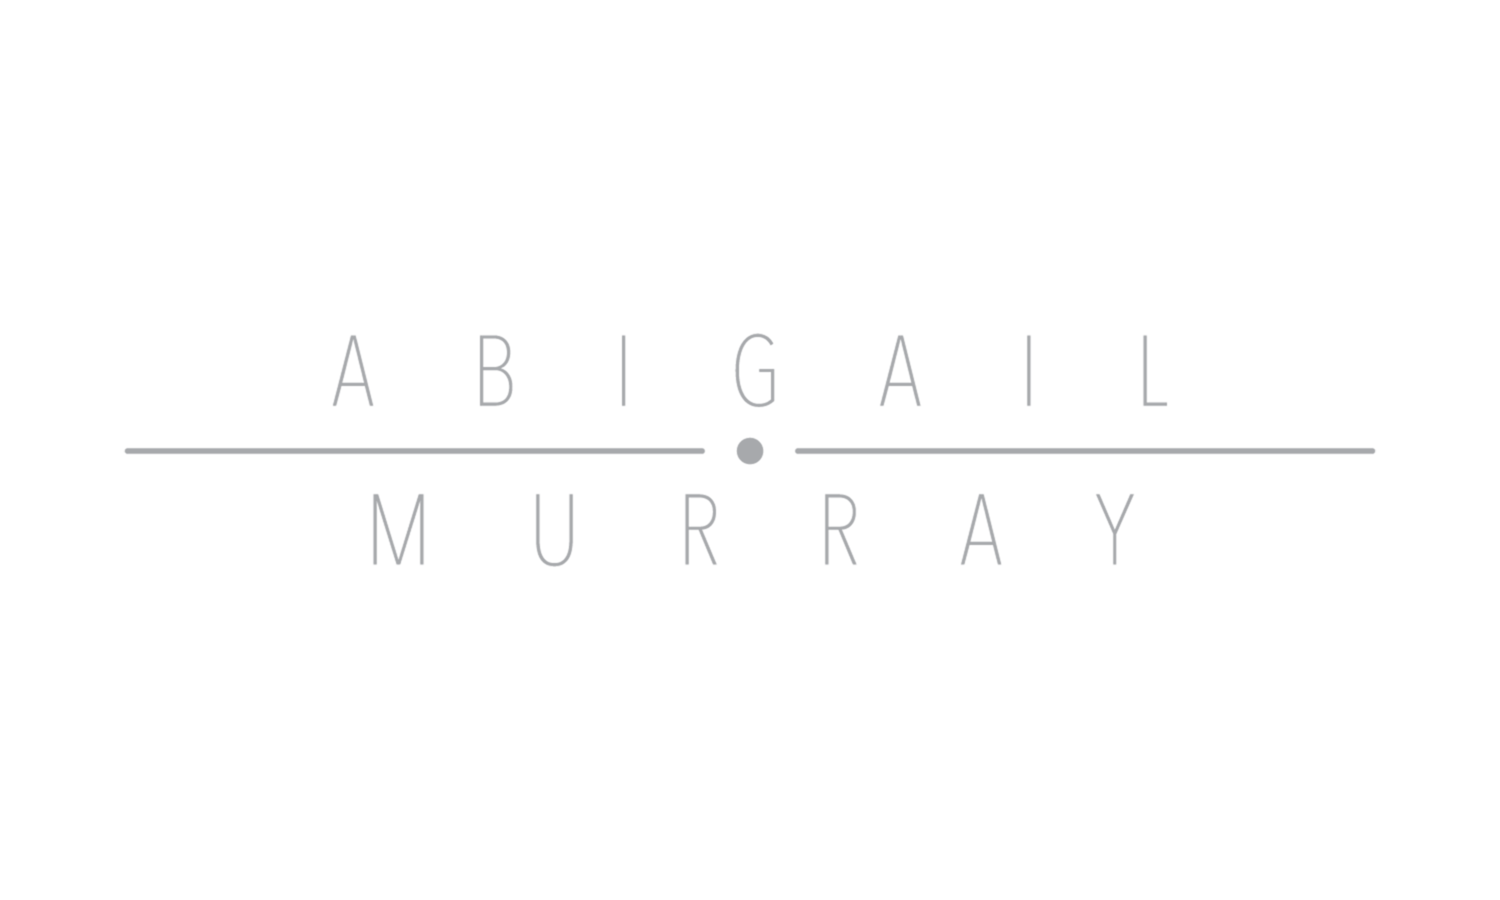 ABIGAIL MURRAY